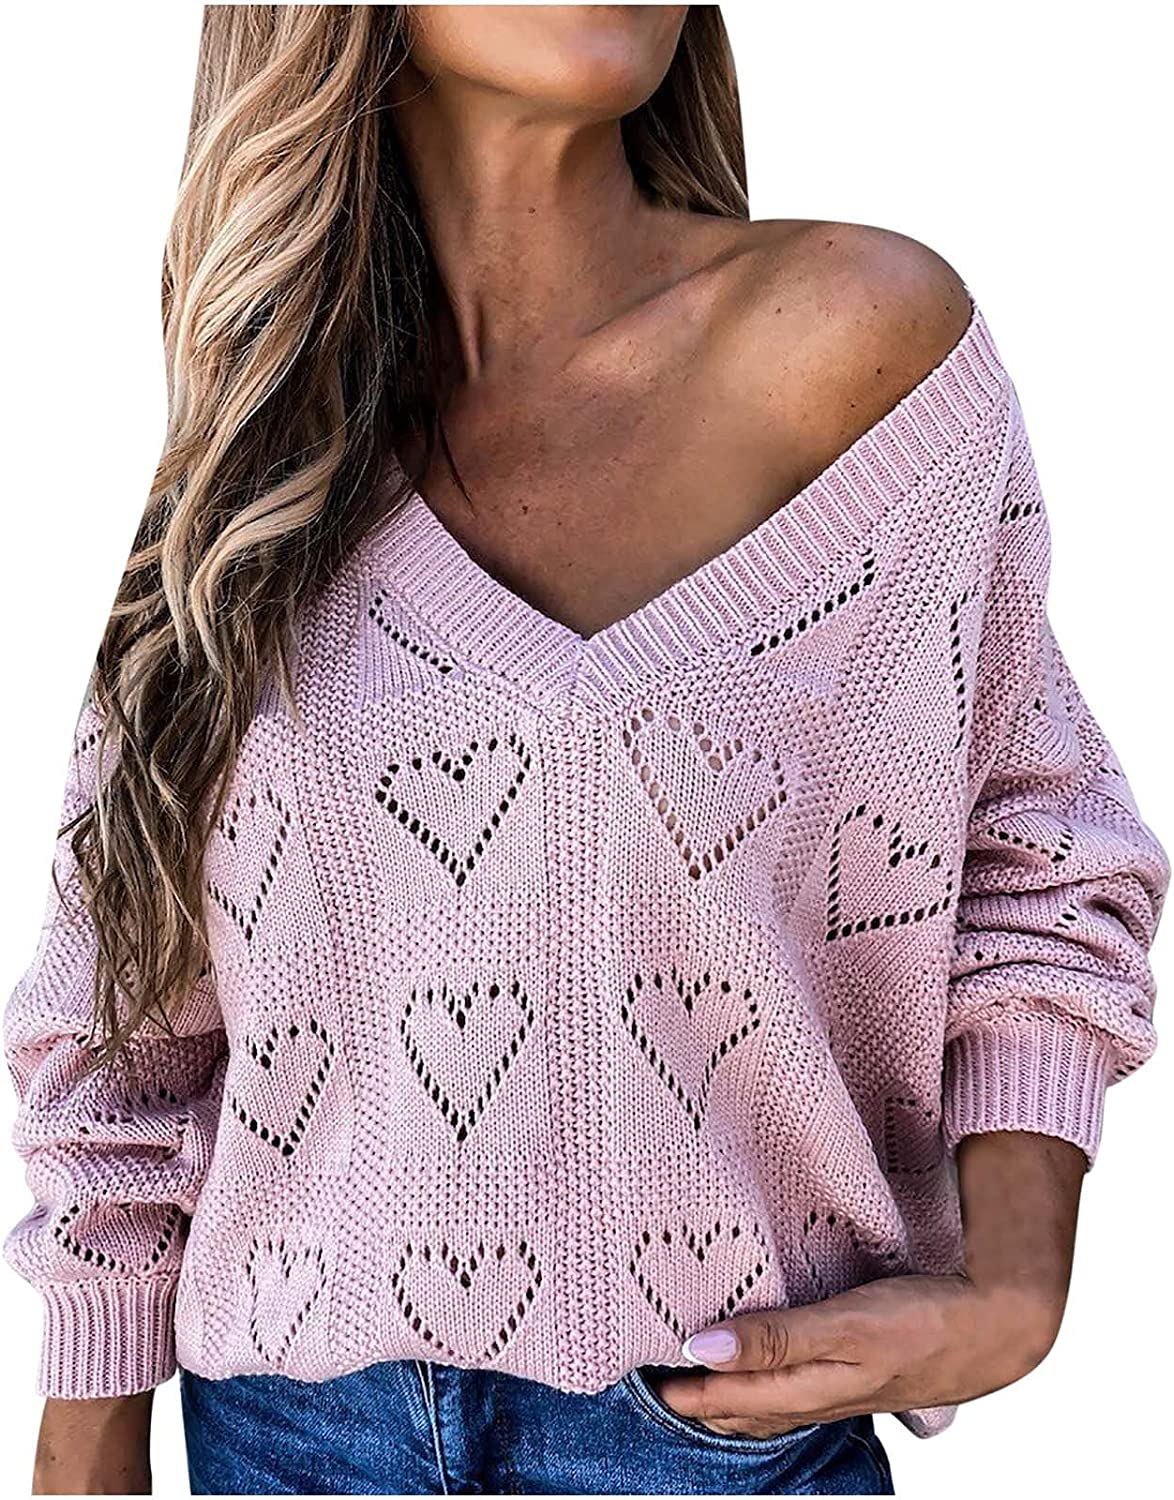 Kanzd Sweaters for Women Fashion Oversized Long Sleeve V Neck Heart-Shaped Hollow Out Loose Knitted Sweater Top Blouse